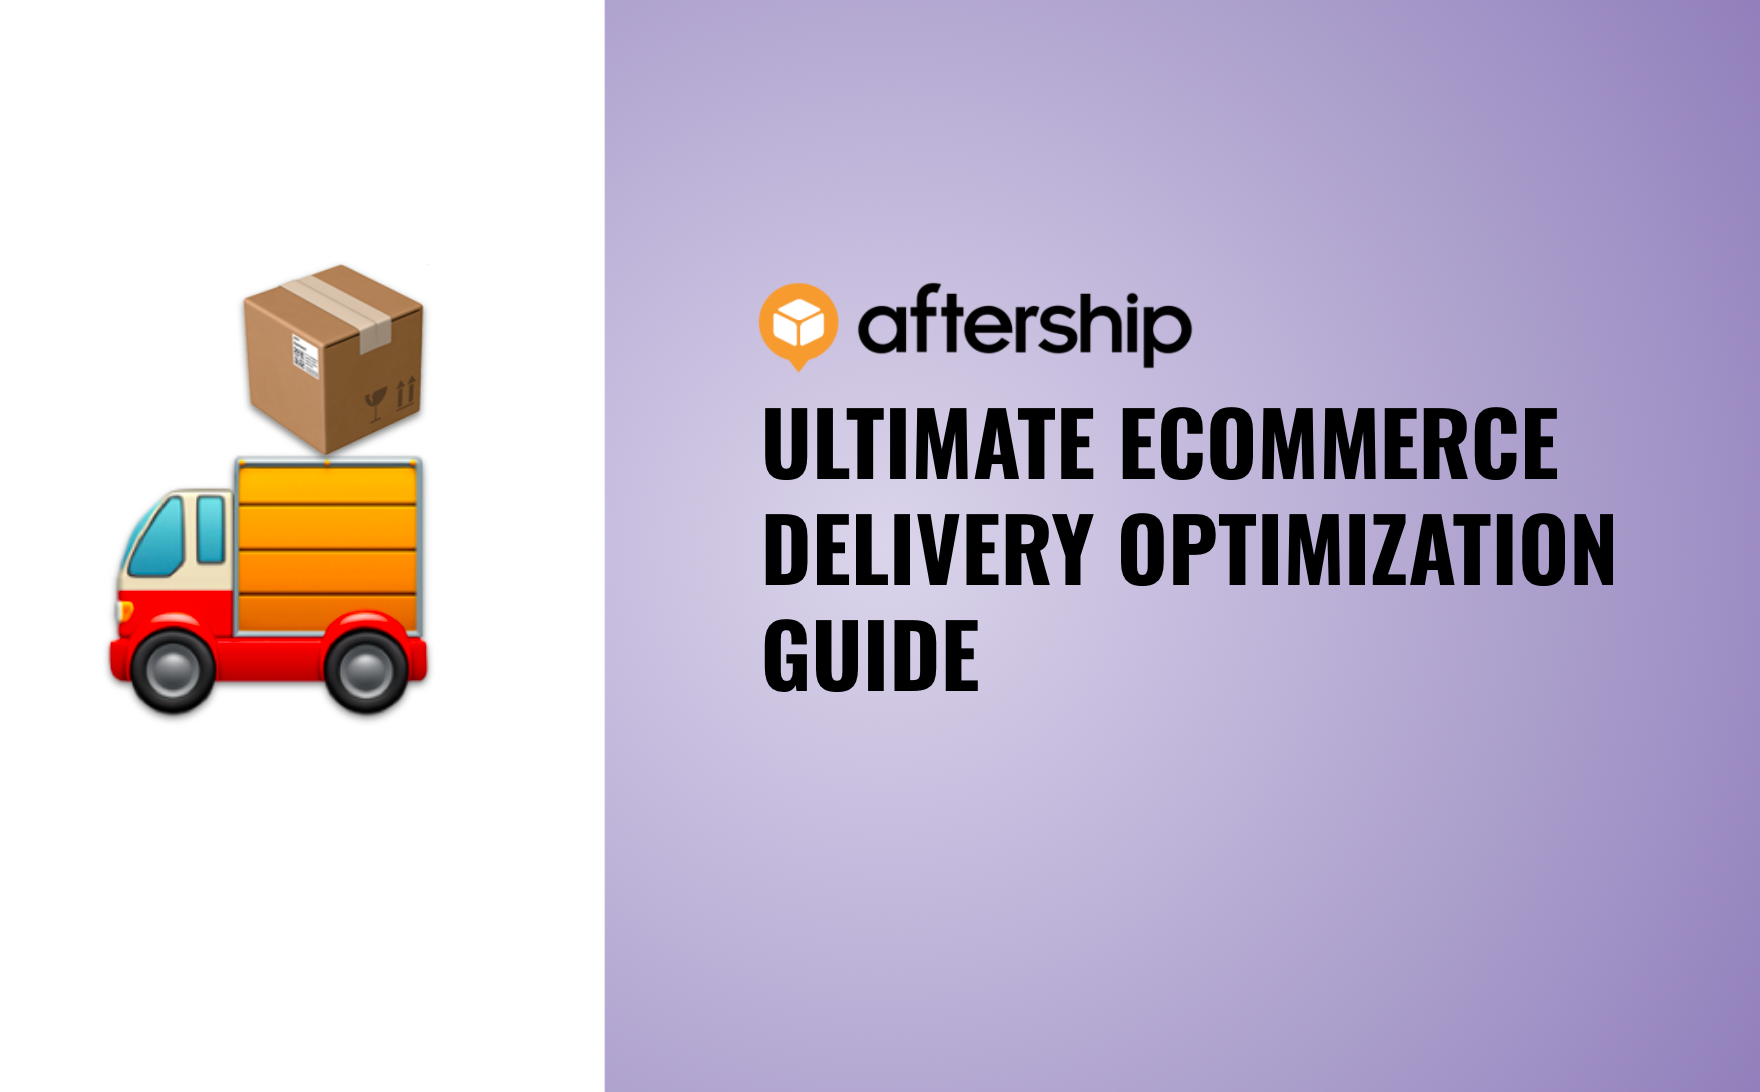 The Ultimate Guide for Optimizing Ecommerce Delivery in 2021